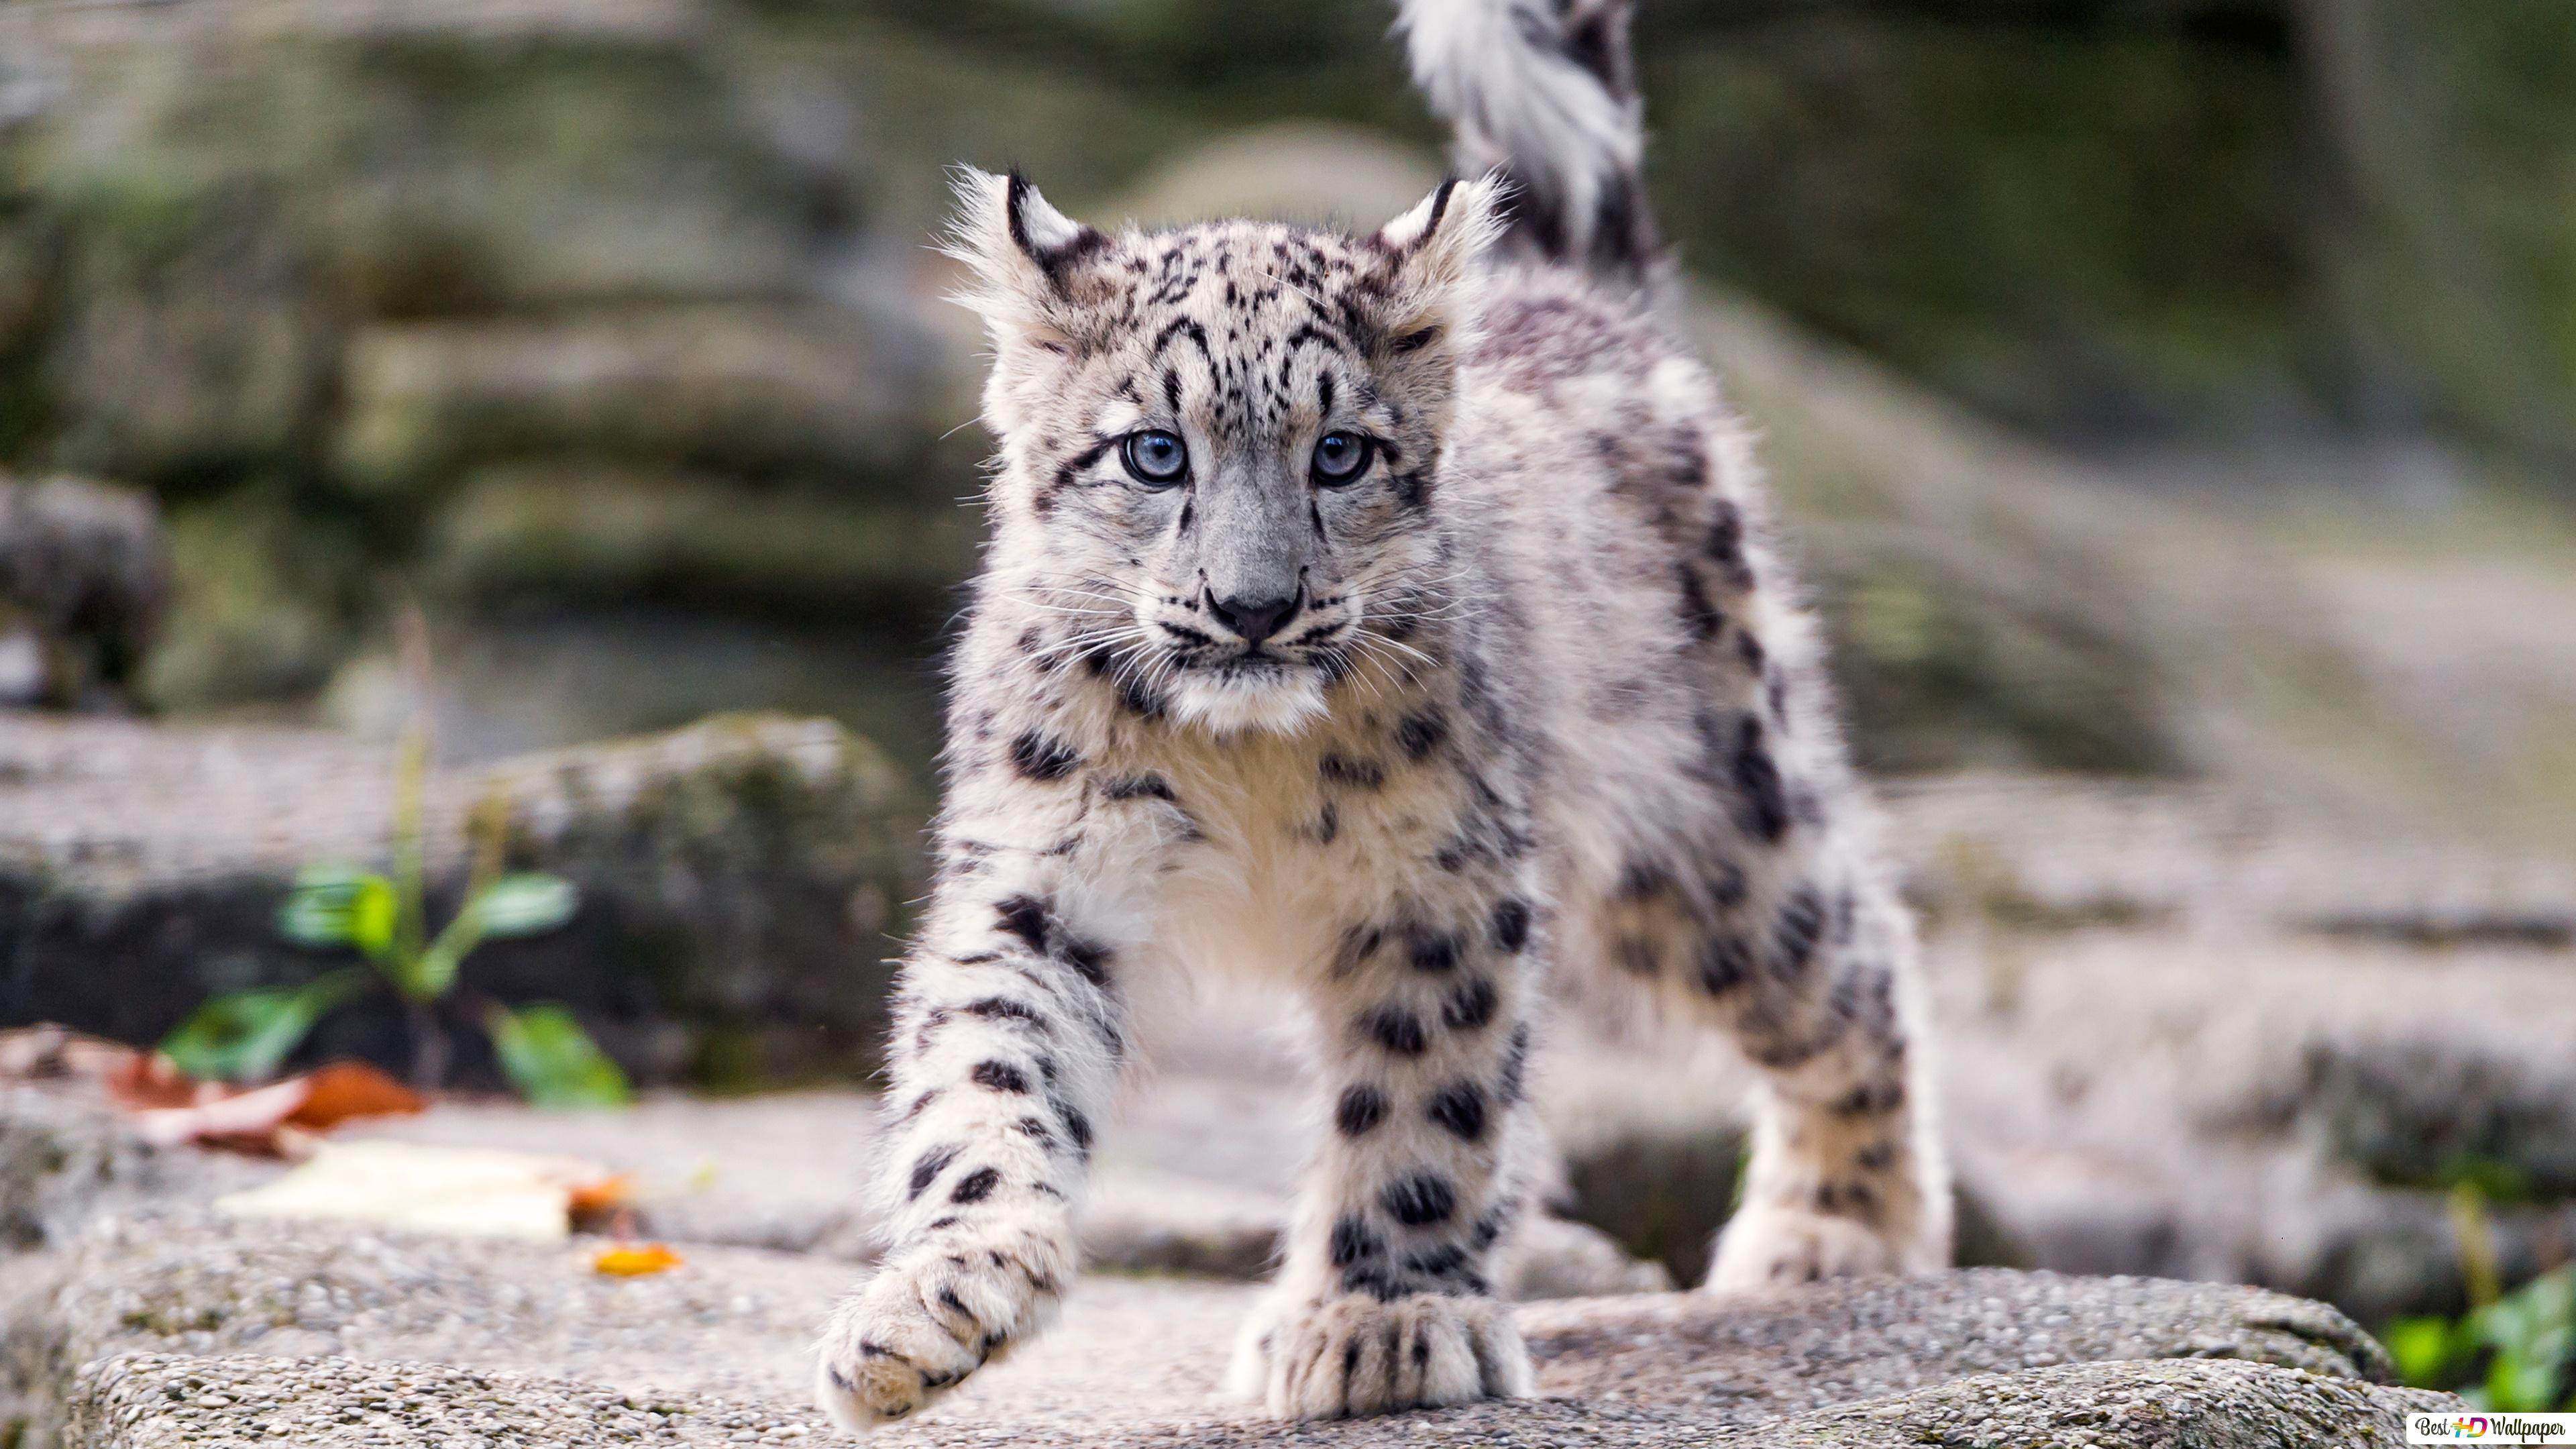 Young snow leopard HD wallpaper download